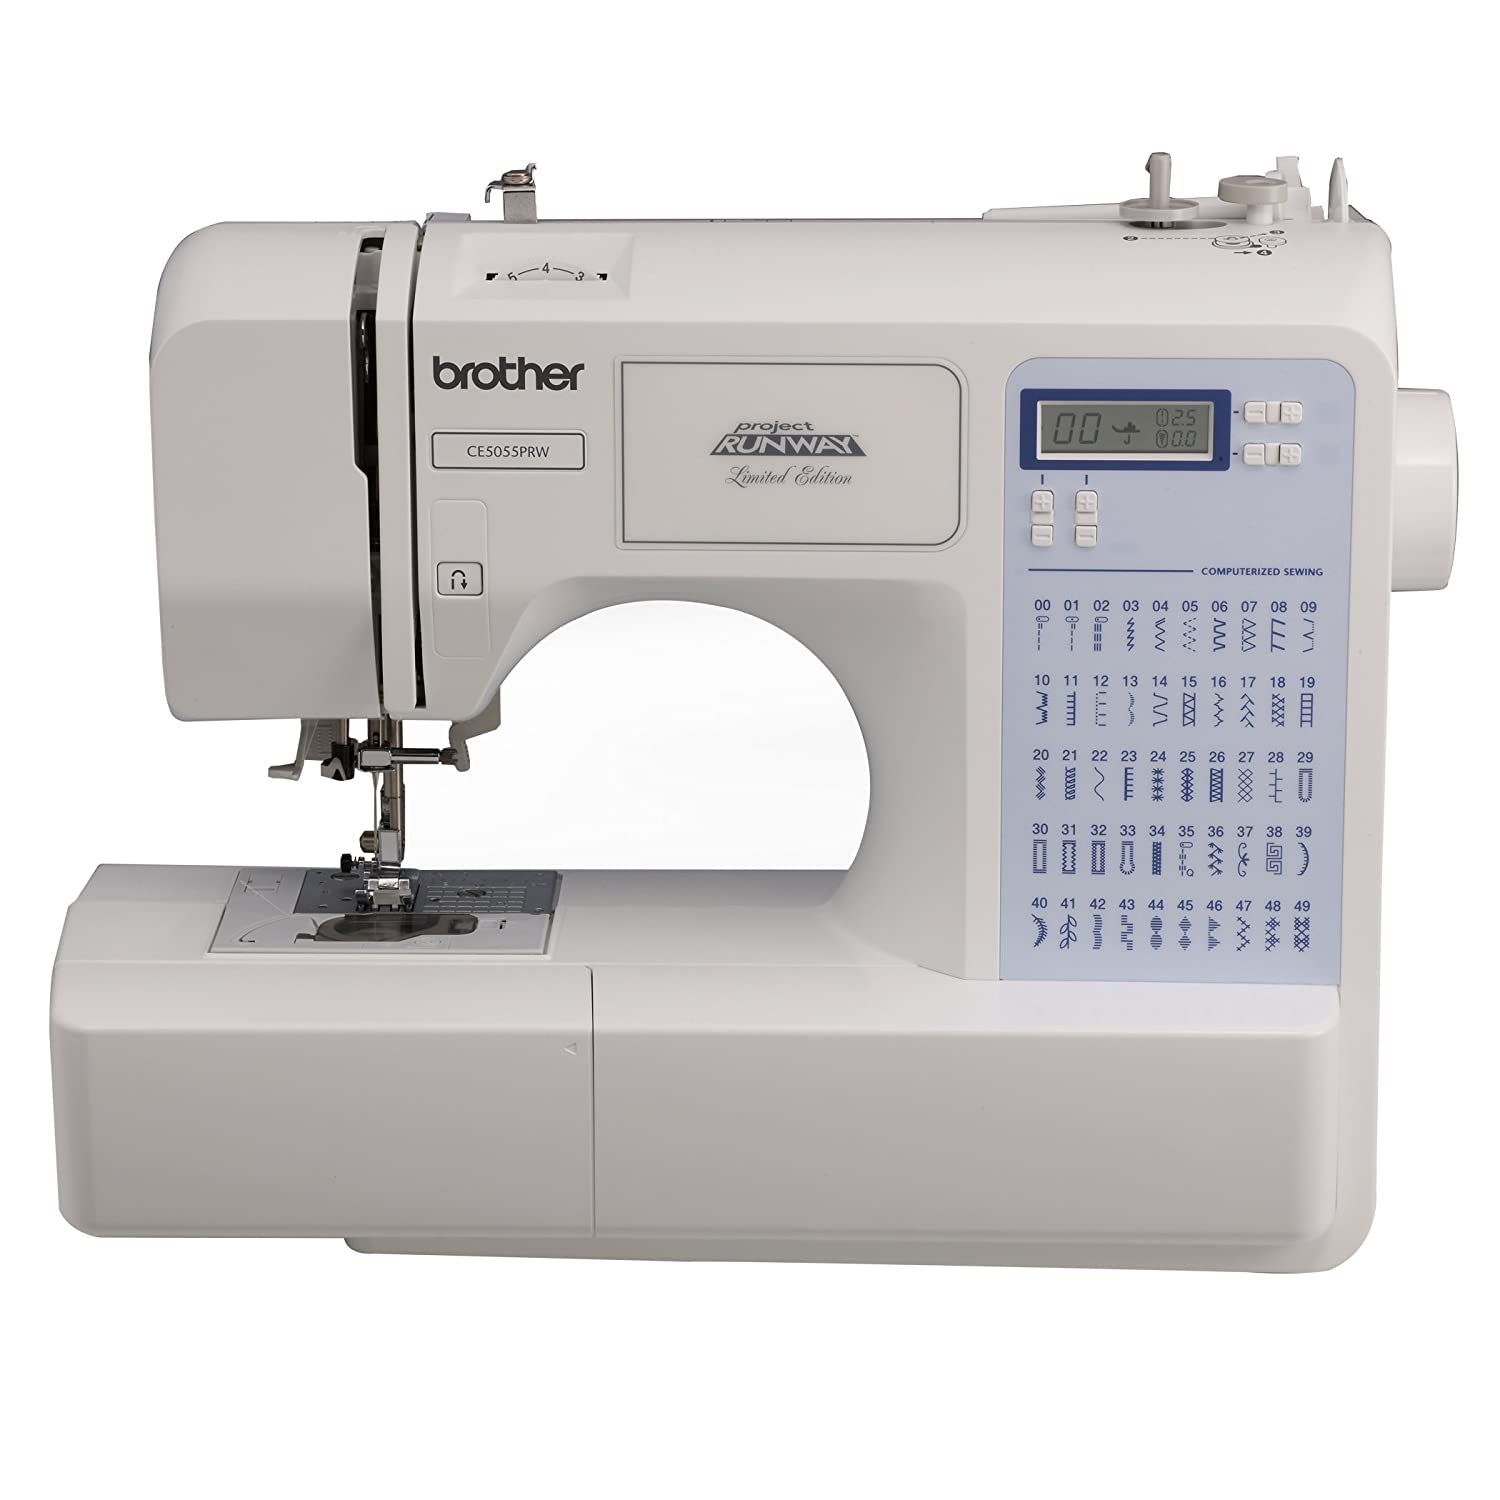 Brother-Project-CS5055PRW-Electric-Machine